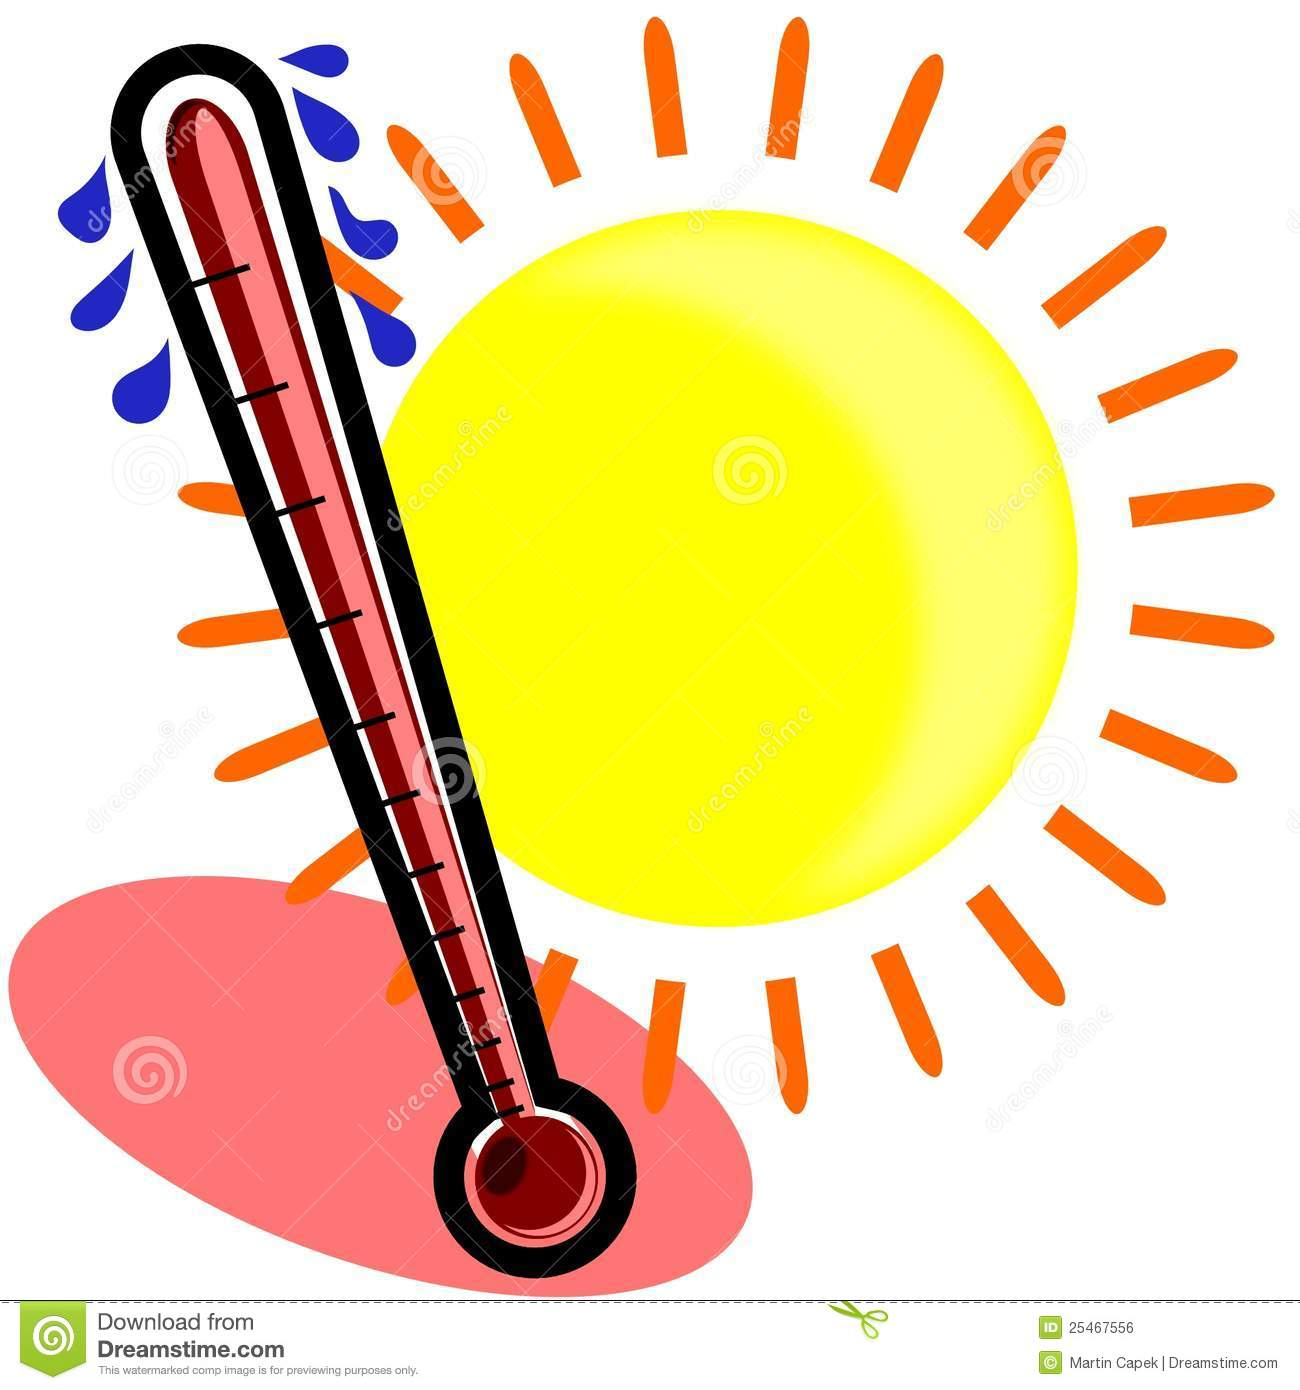 Warm and sunny clipart royalty free library Thermometer warm clipart 2 » Clipart Station royalty free library